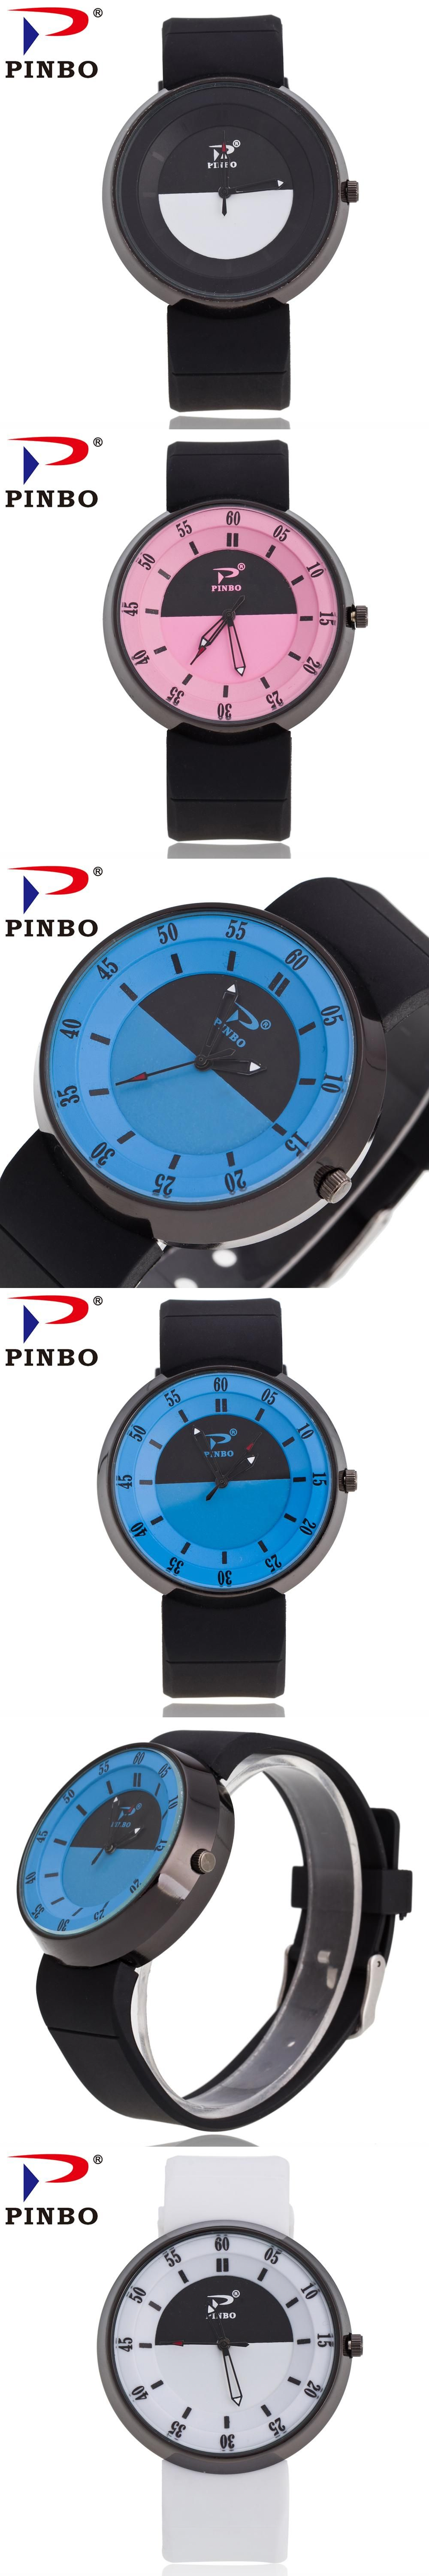 b silicone price equipment lazada u watches best malaysia shop in m